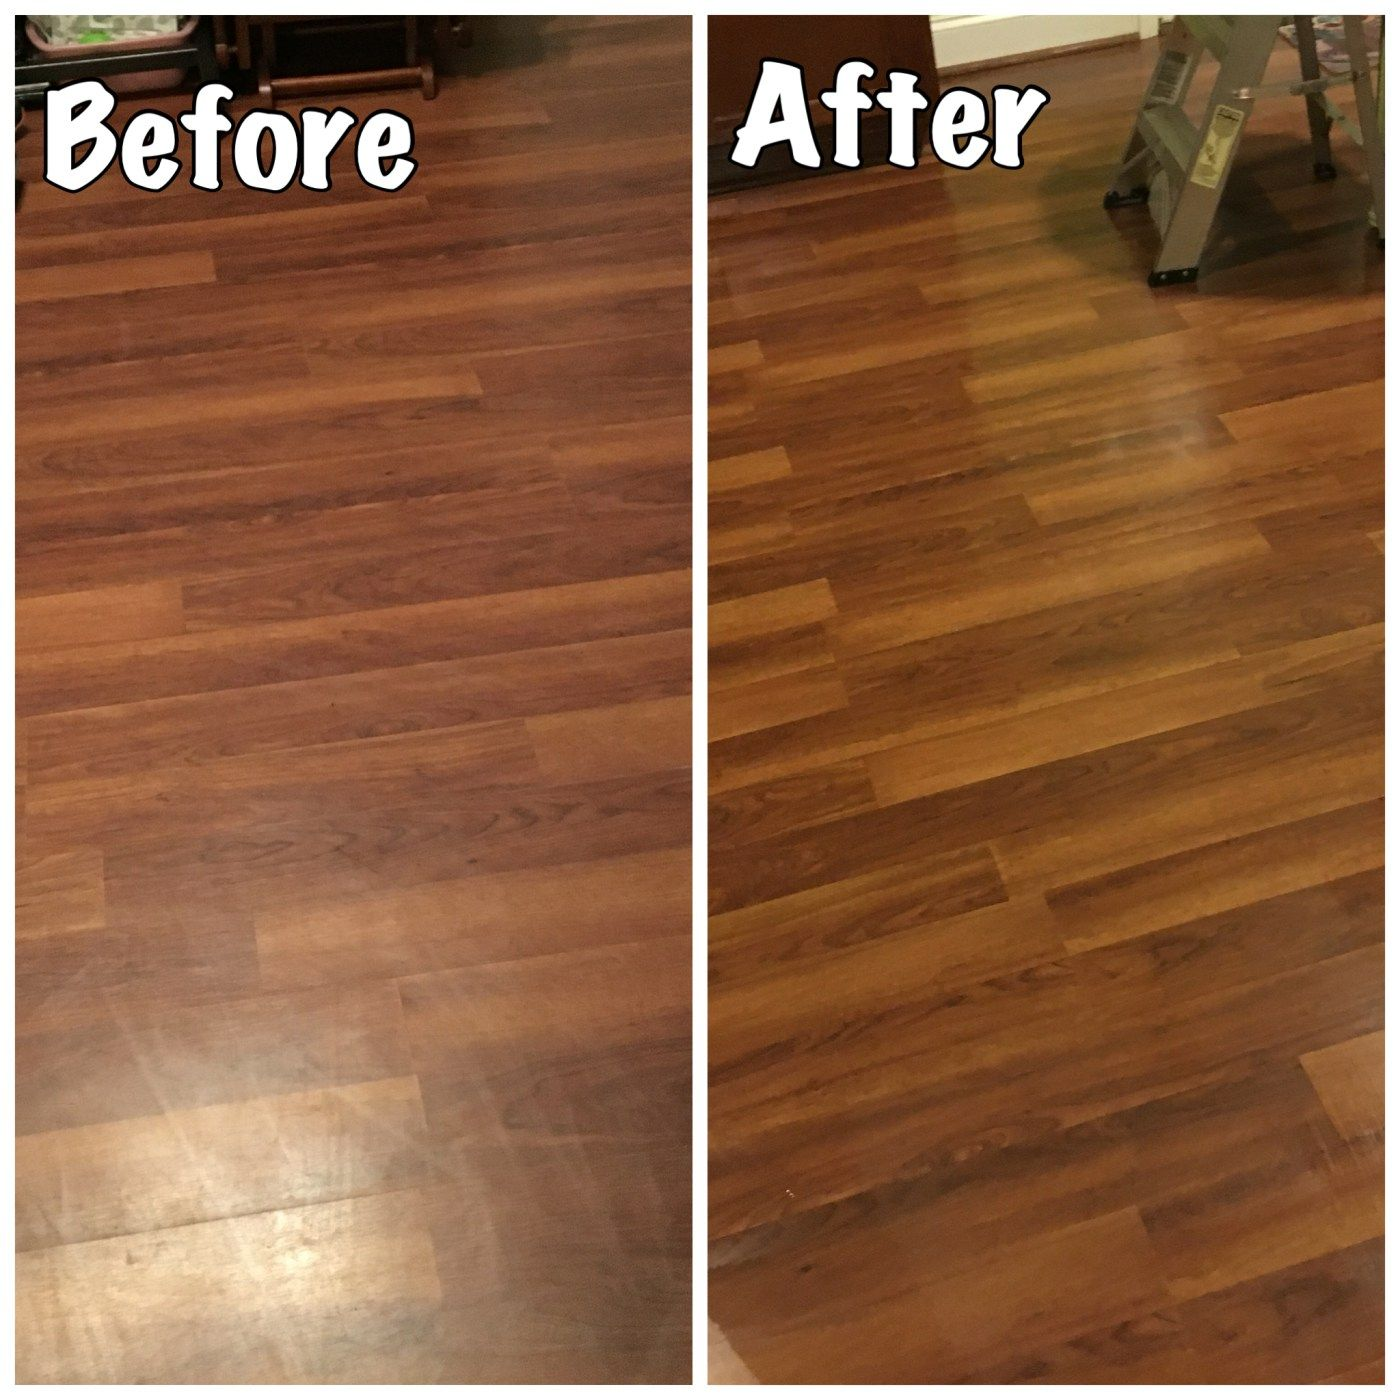 Laminate Floors Make Them Shine Again